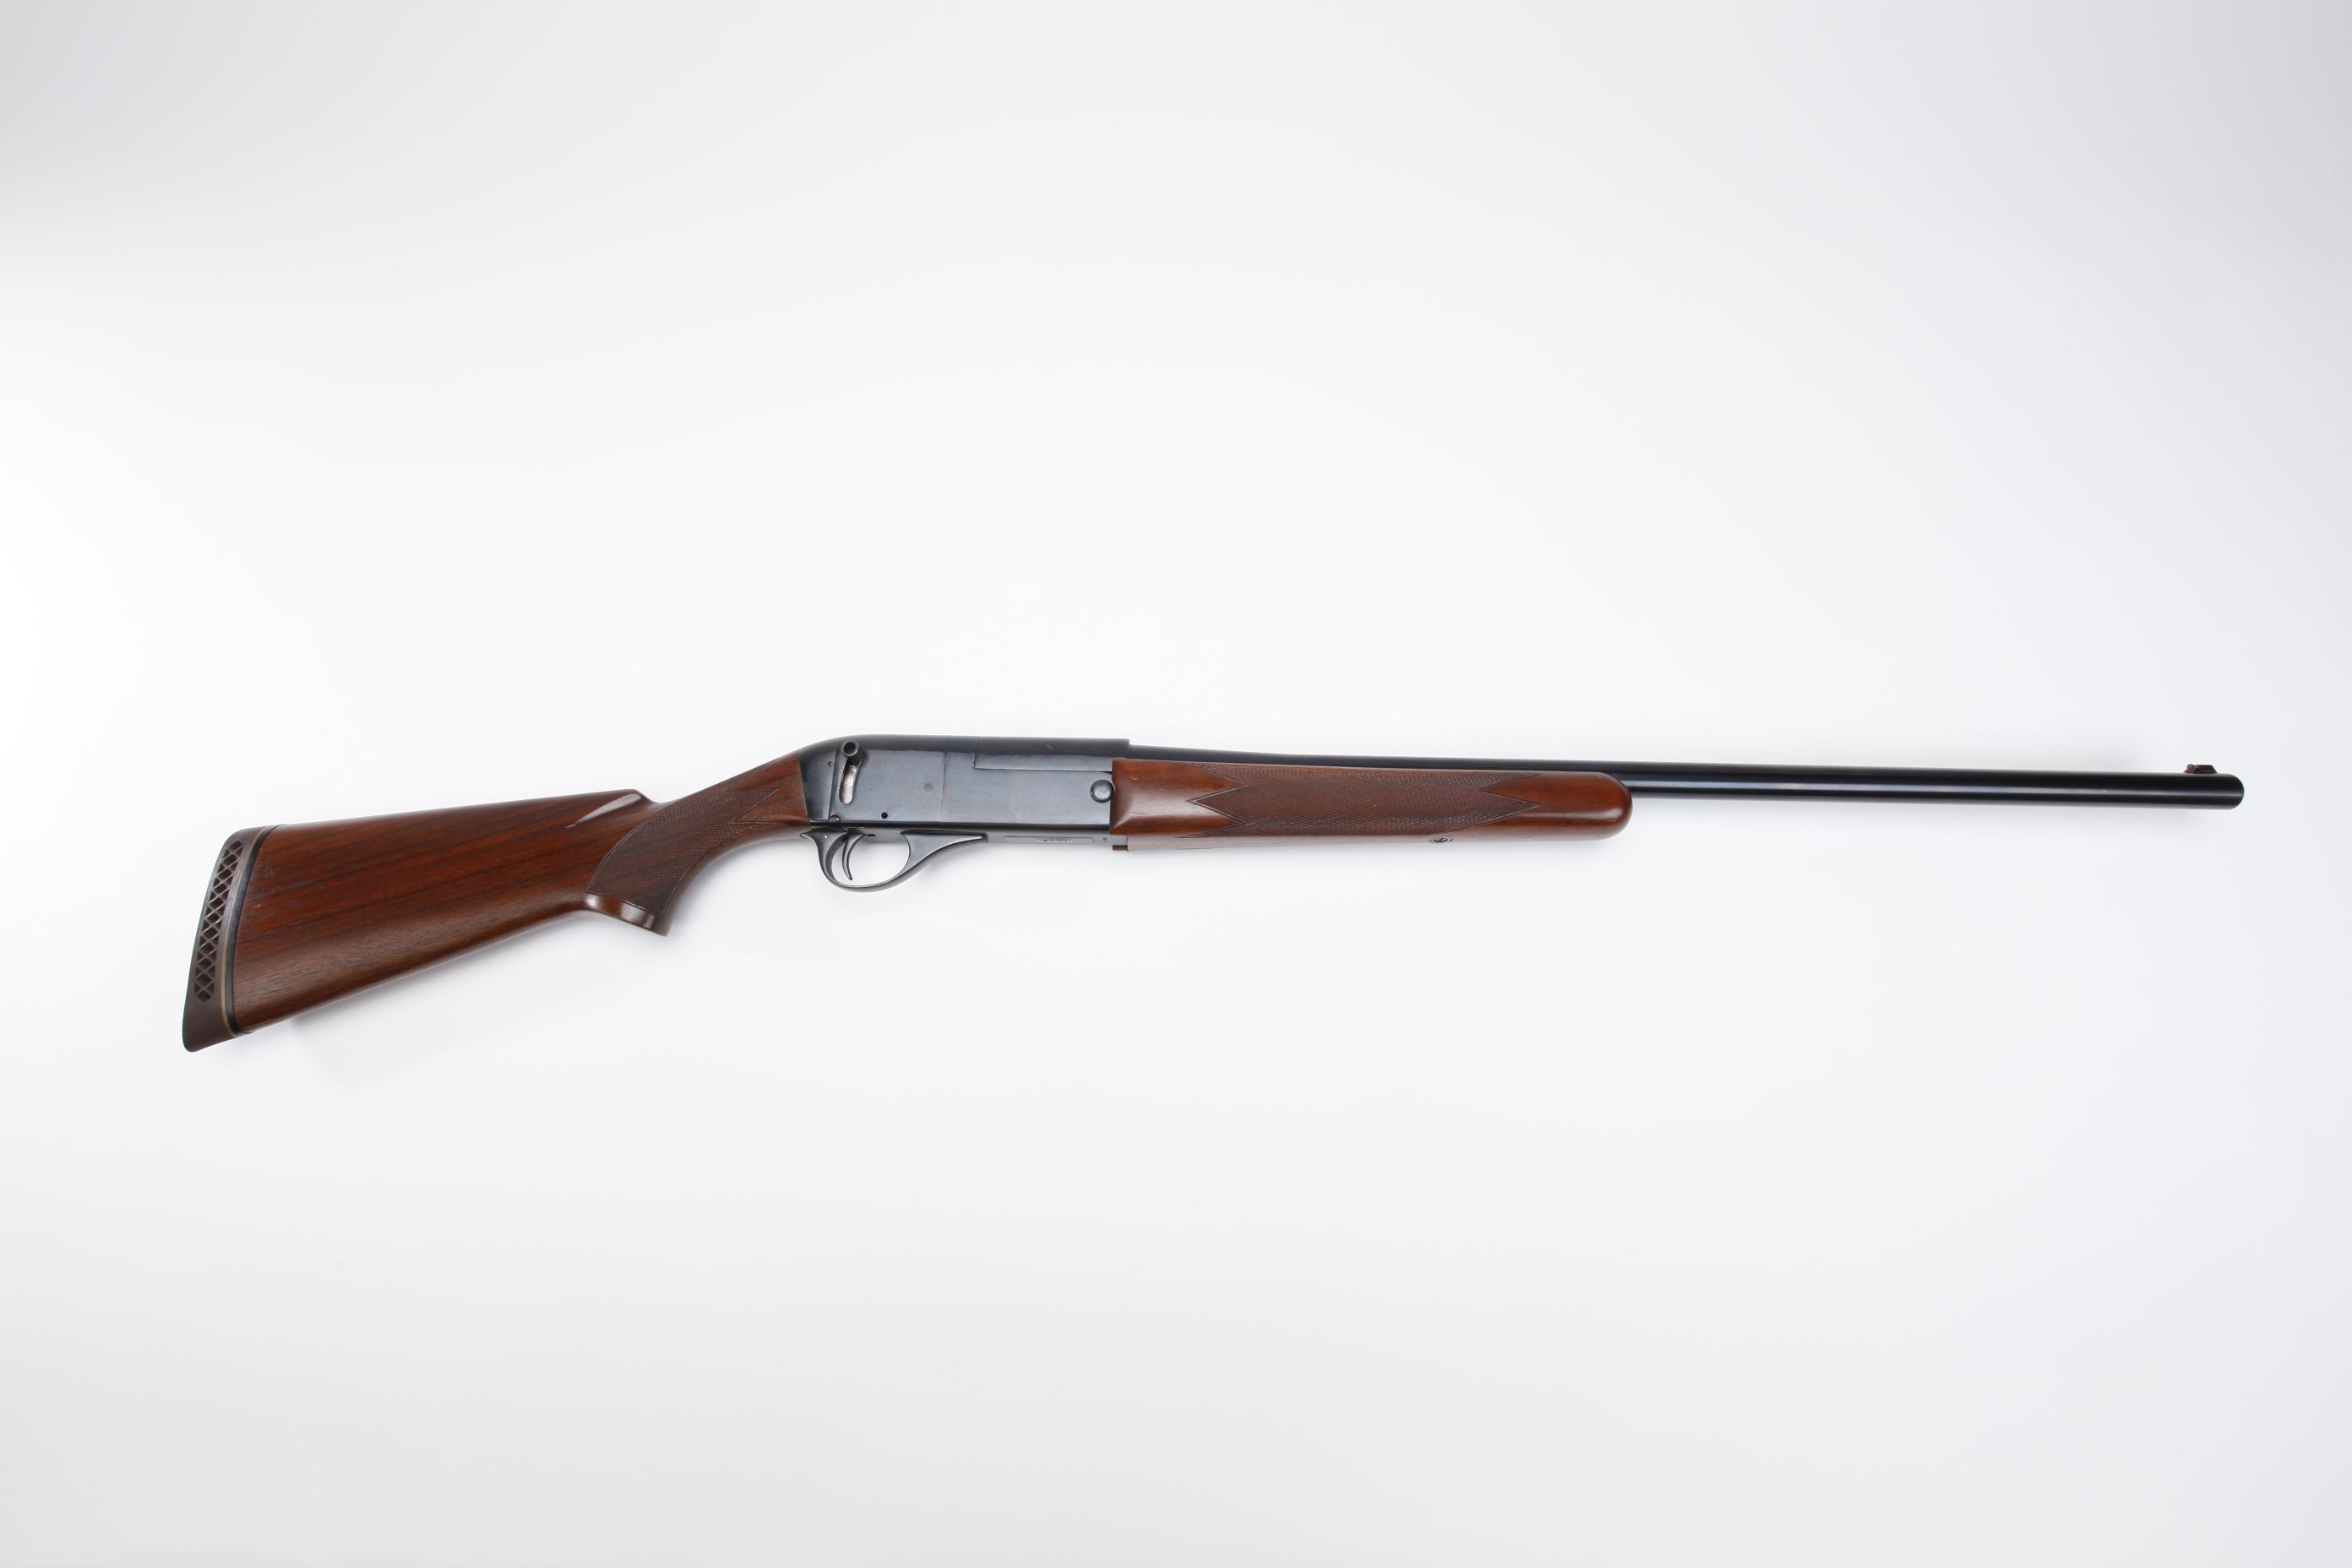 W. H. B. Smith Prototype Single Shot Shotgun